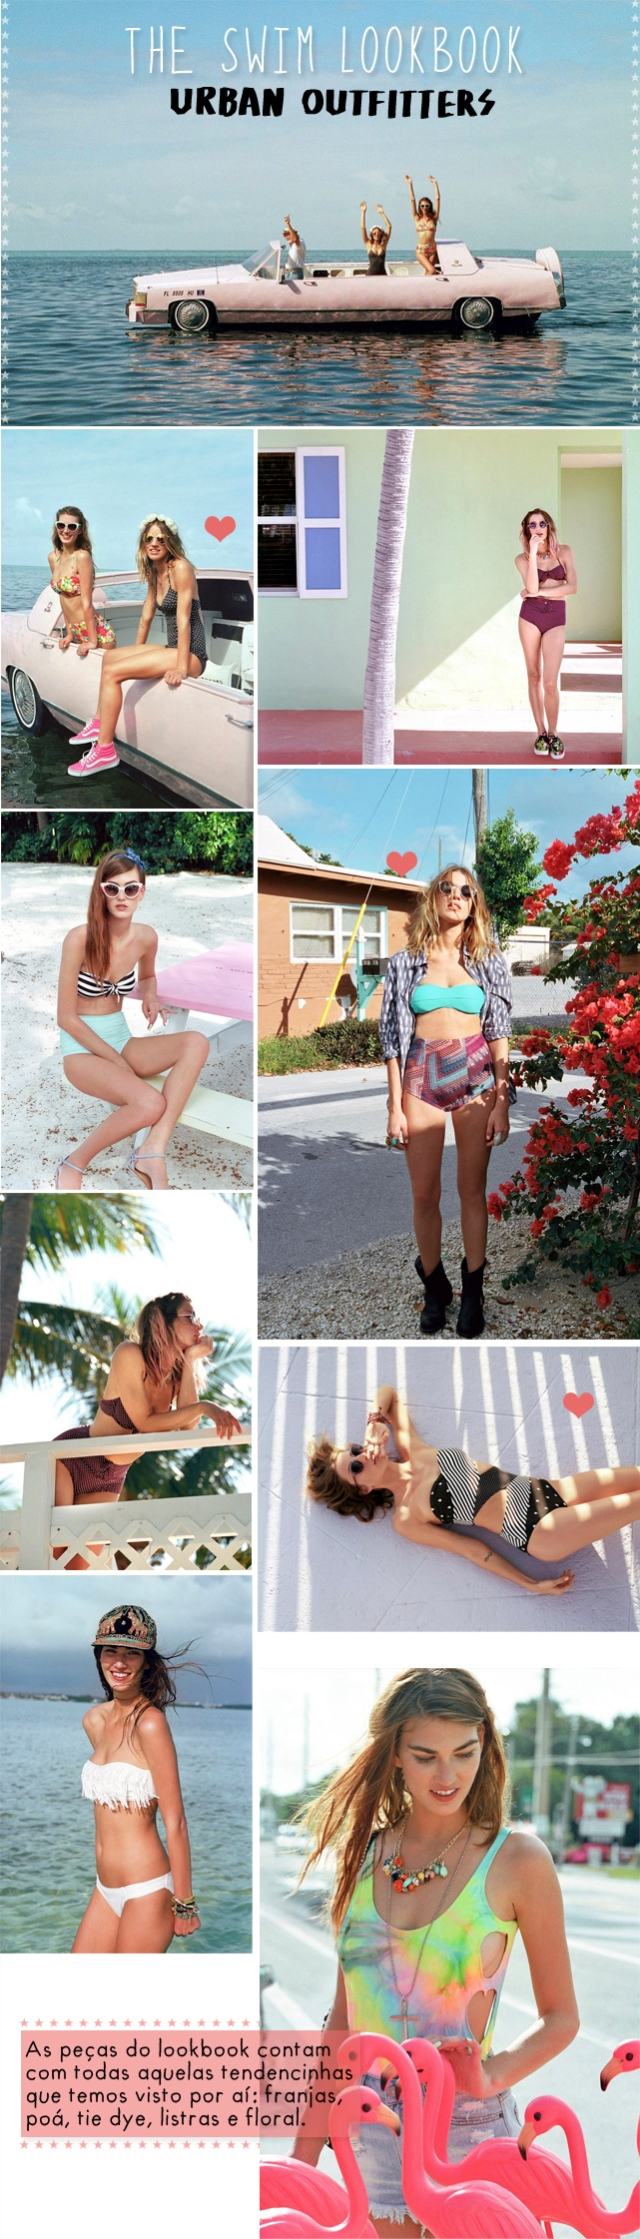 meio-vintage-the-swim-lookbook-uo